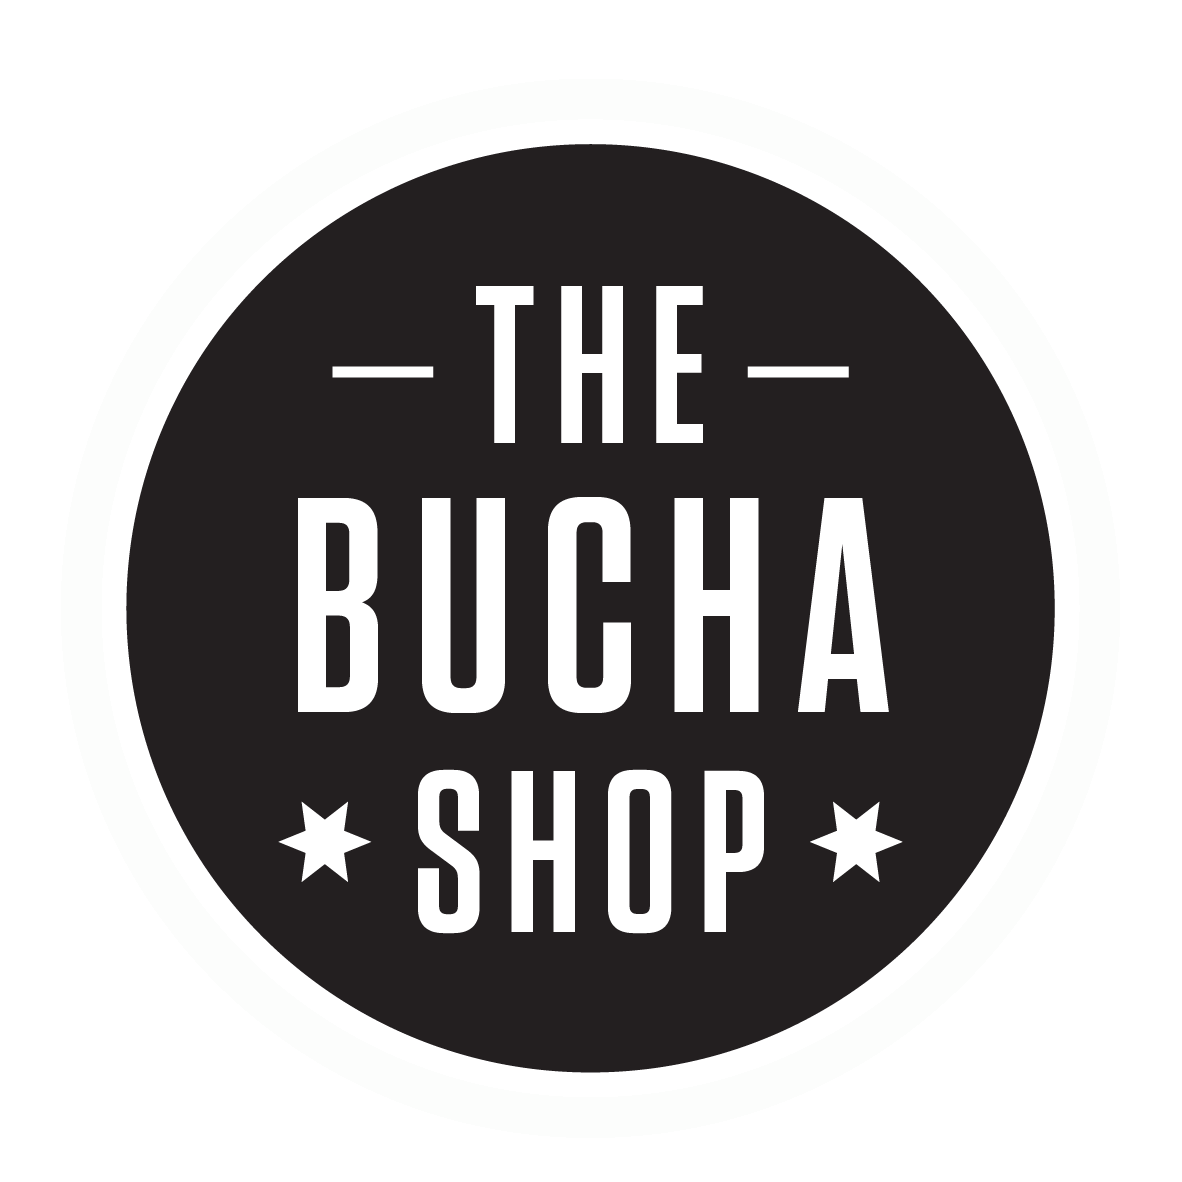 THE BUCHA SHOP